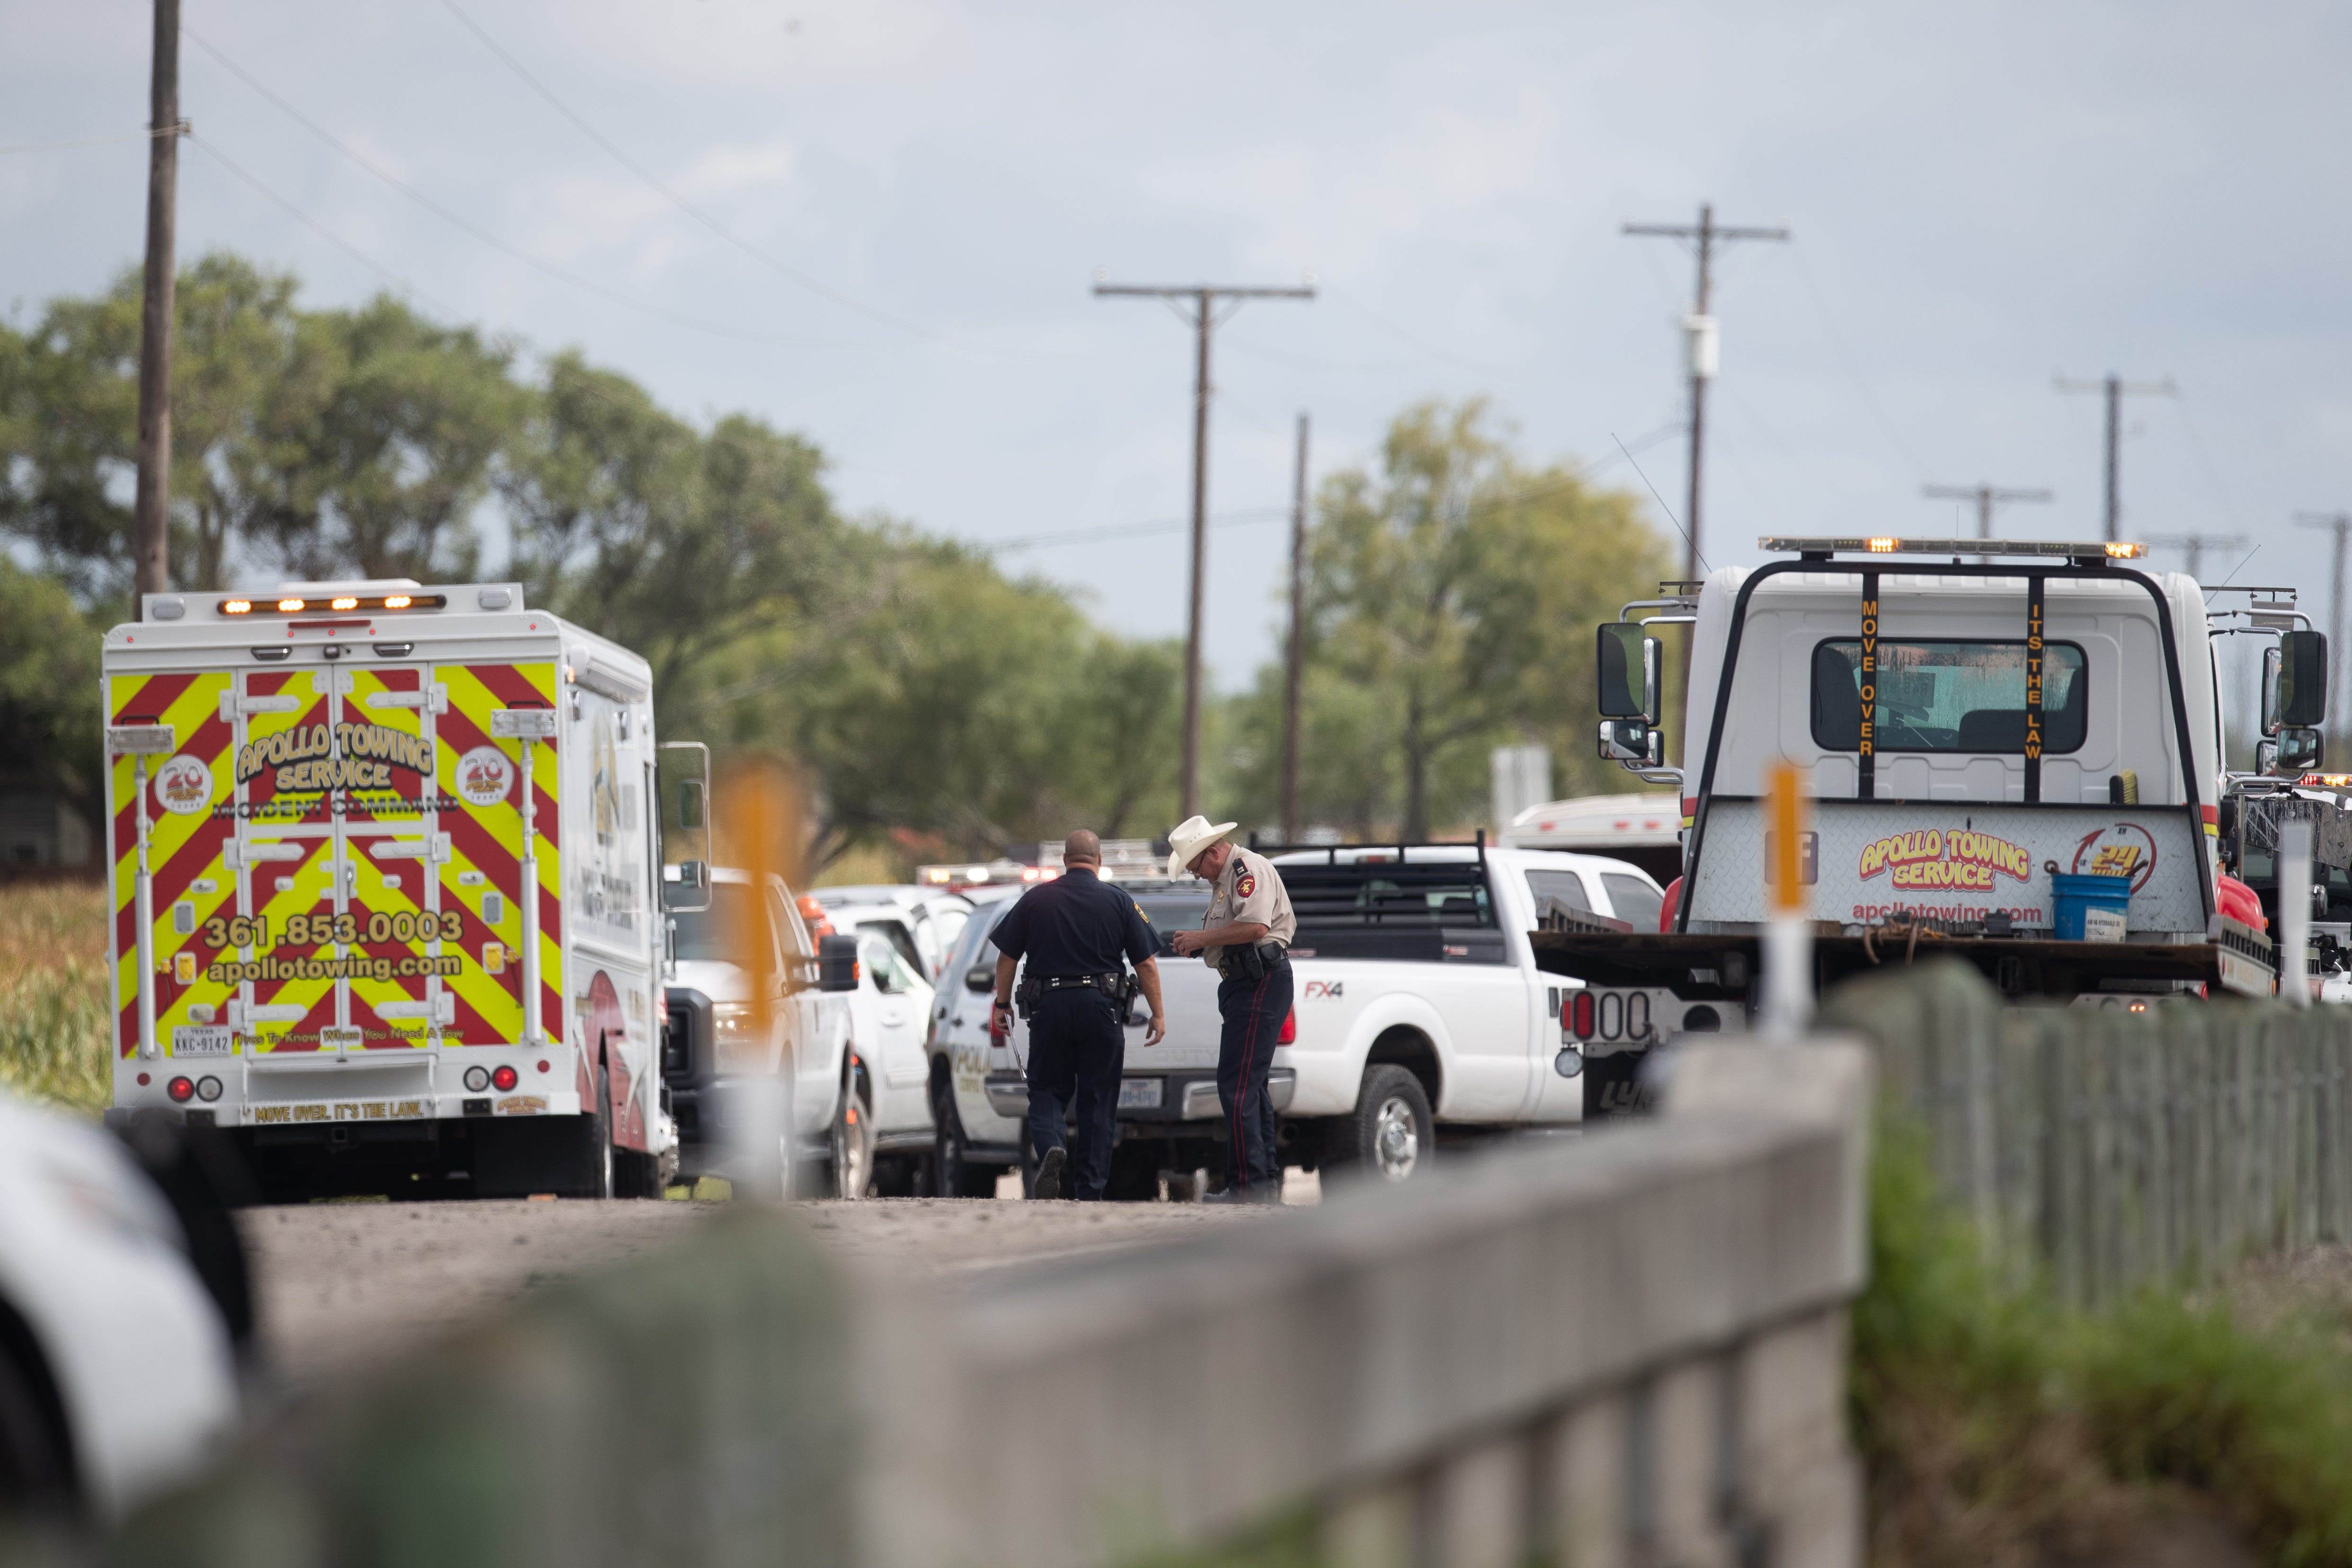 Mexican man faces federal charges in Texas crash that left 6 dead